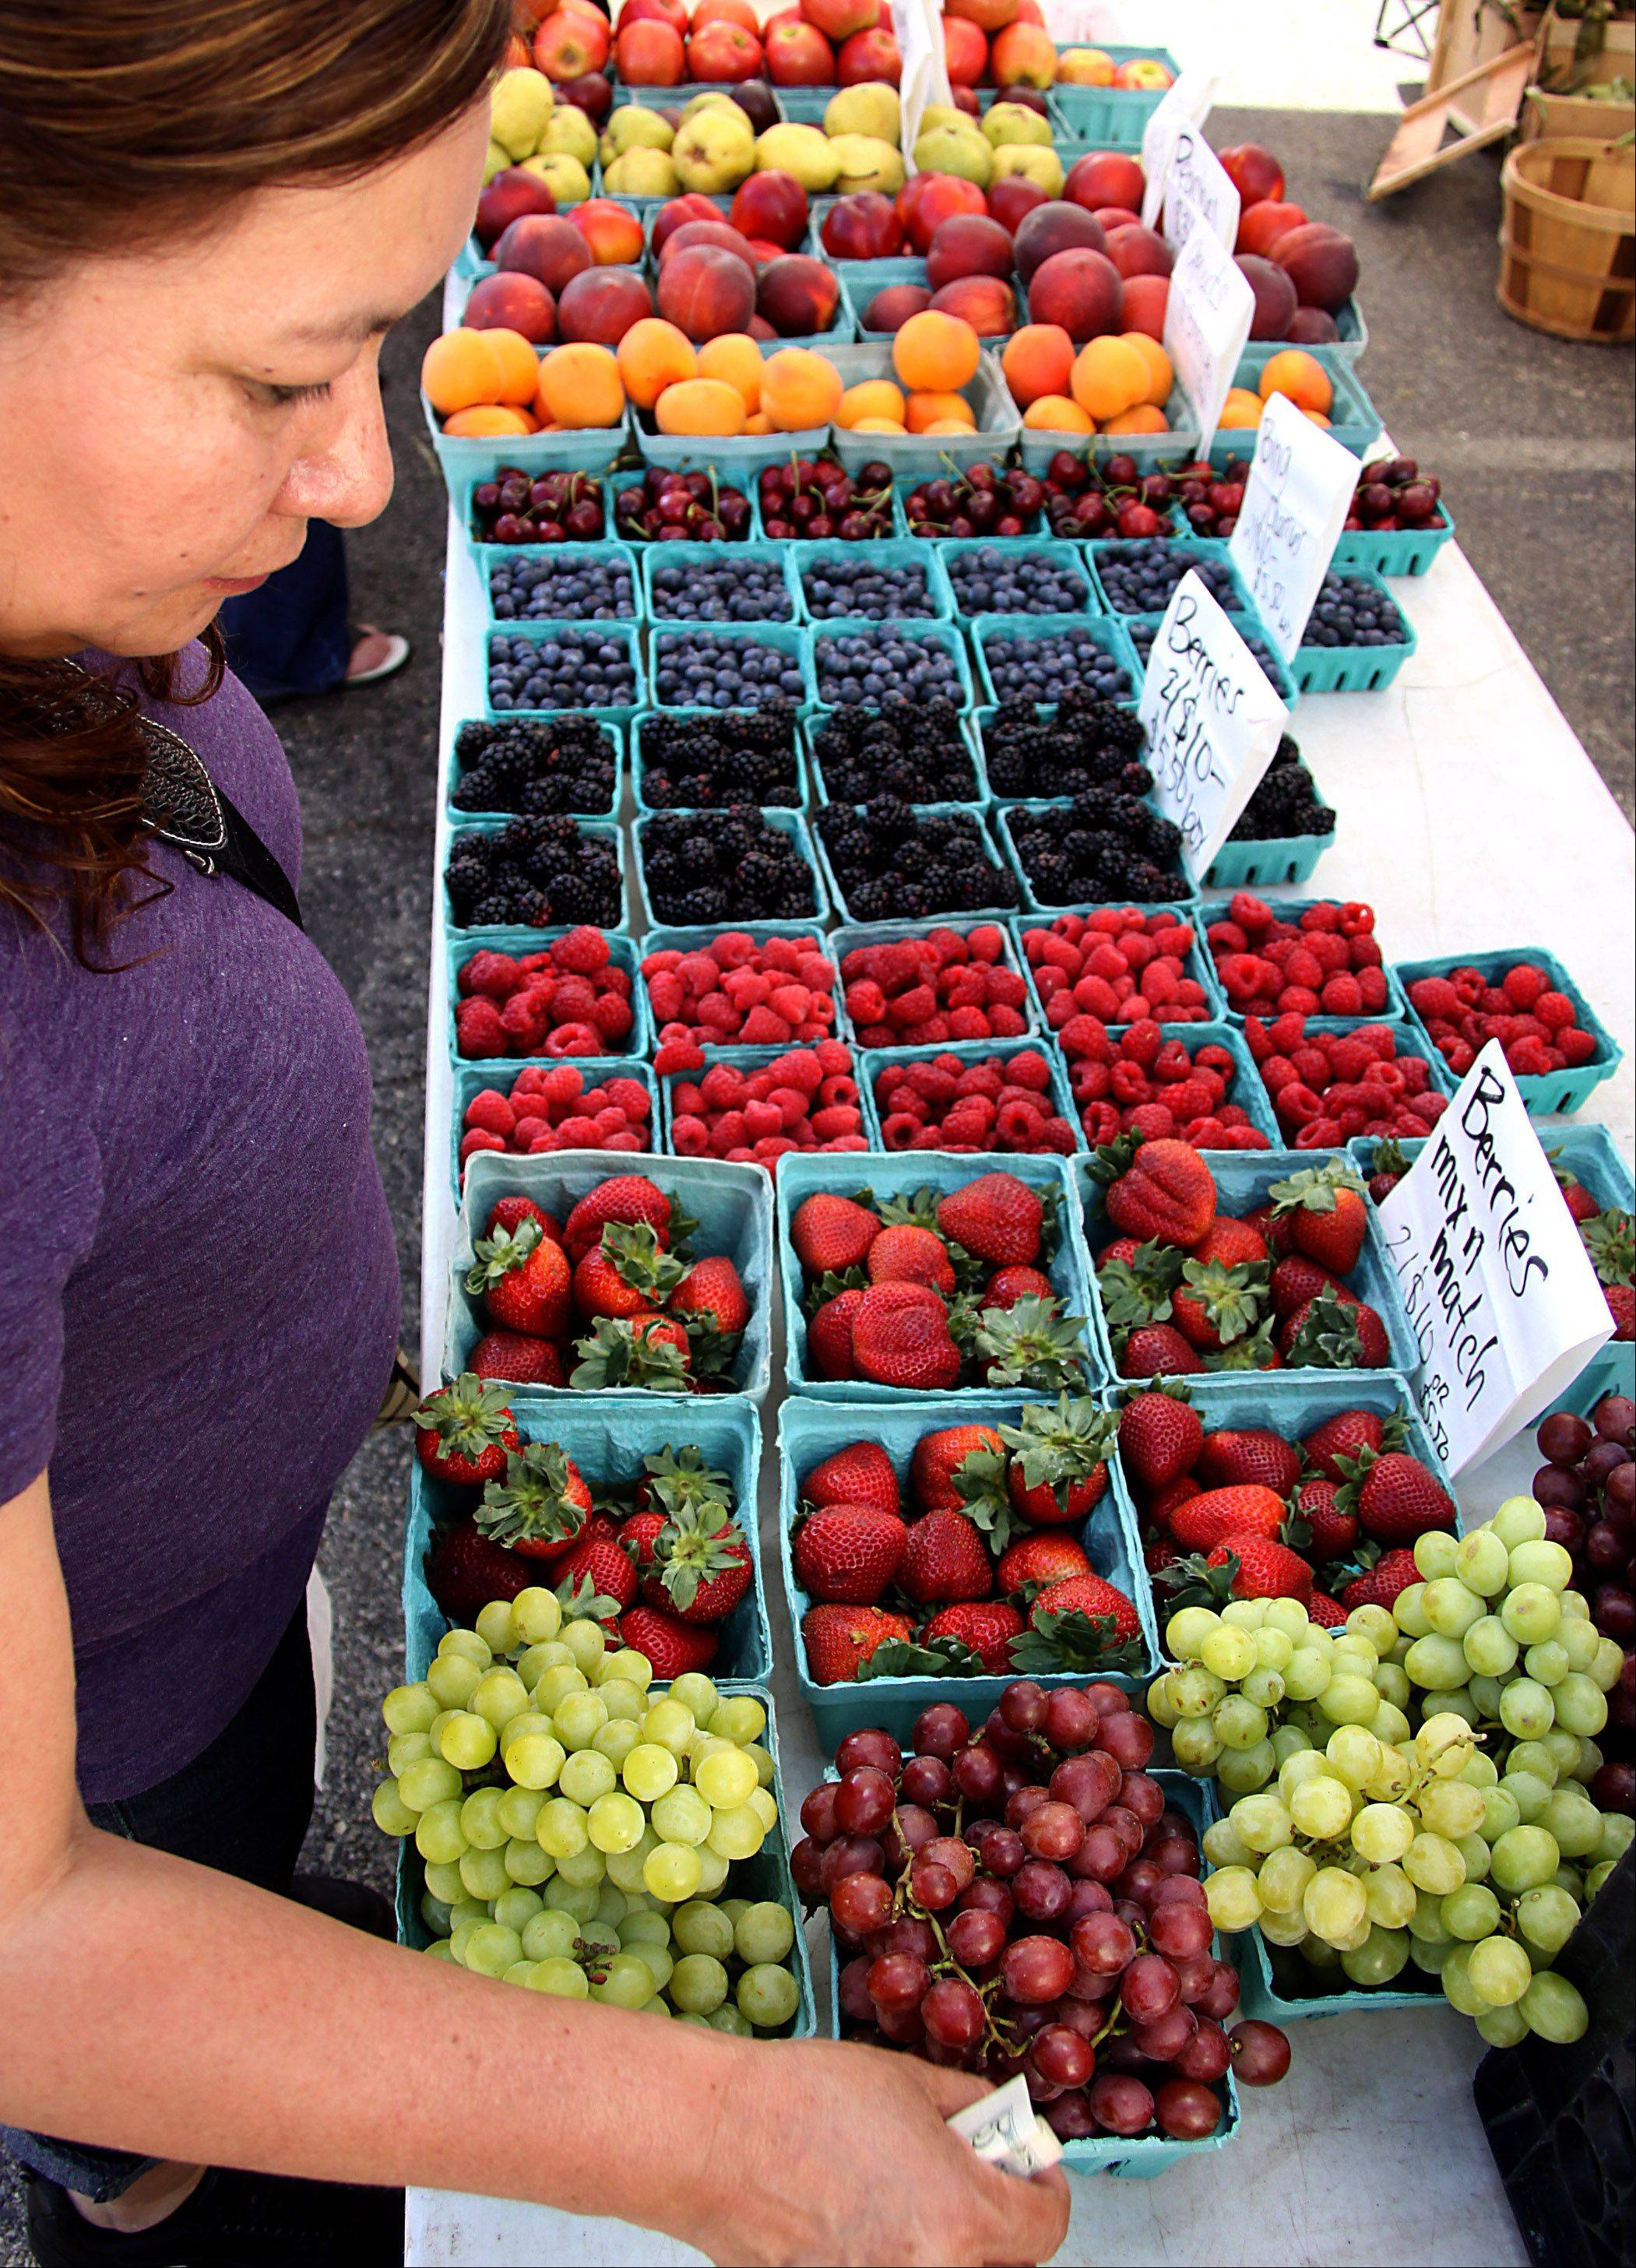 A shopper looks over berries at the Windy Acres Farm Stand booth during the Downtown Harvest Market in Elgin earlier this season. It is one of two in Kane County that accepts Link electronic benefits cards.